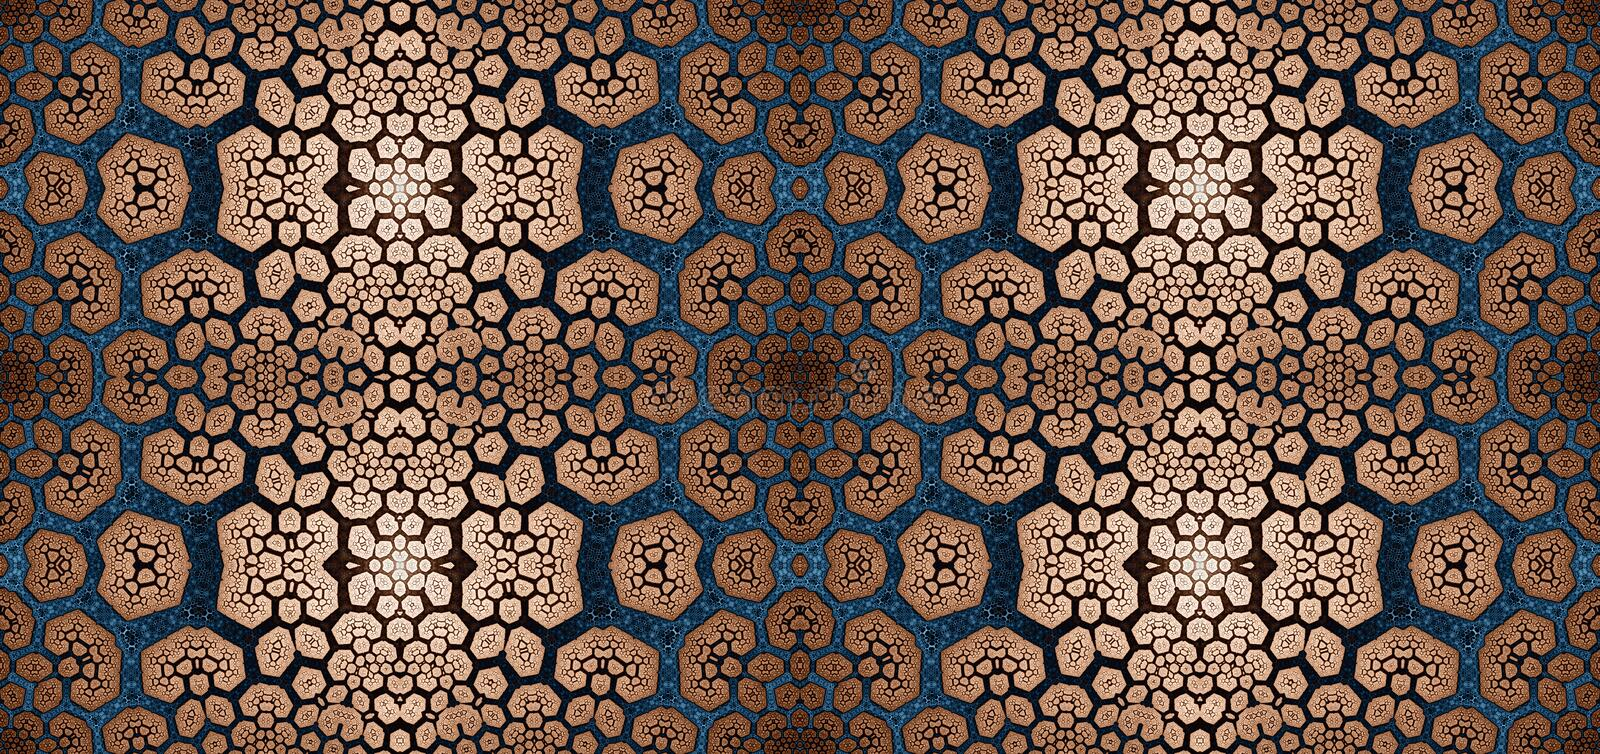 Abstract fractal high resolution seamless pattern for carpets, tapestries, fabric, and wallpapers in shining colors royalty free illustration